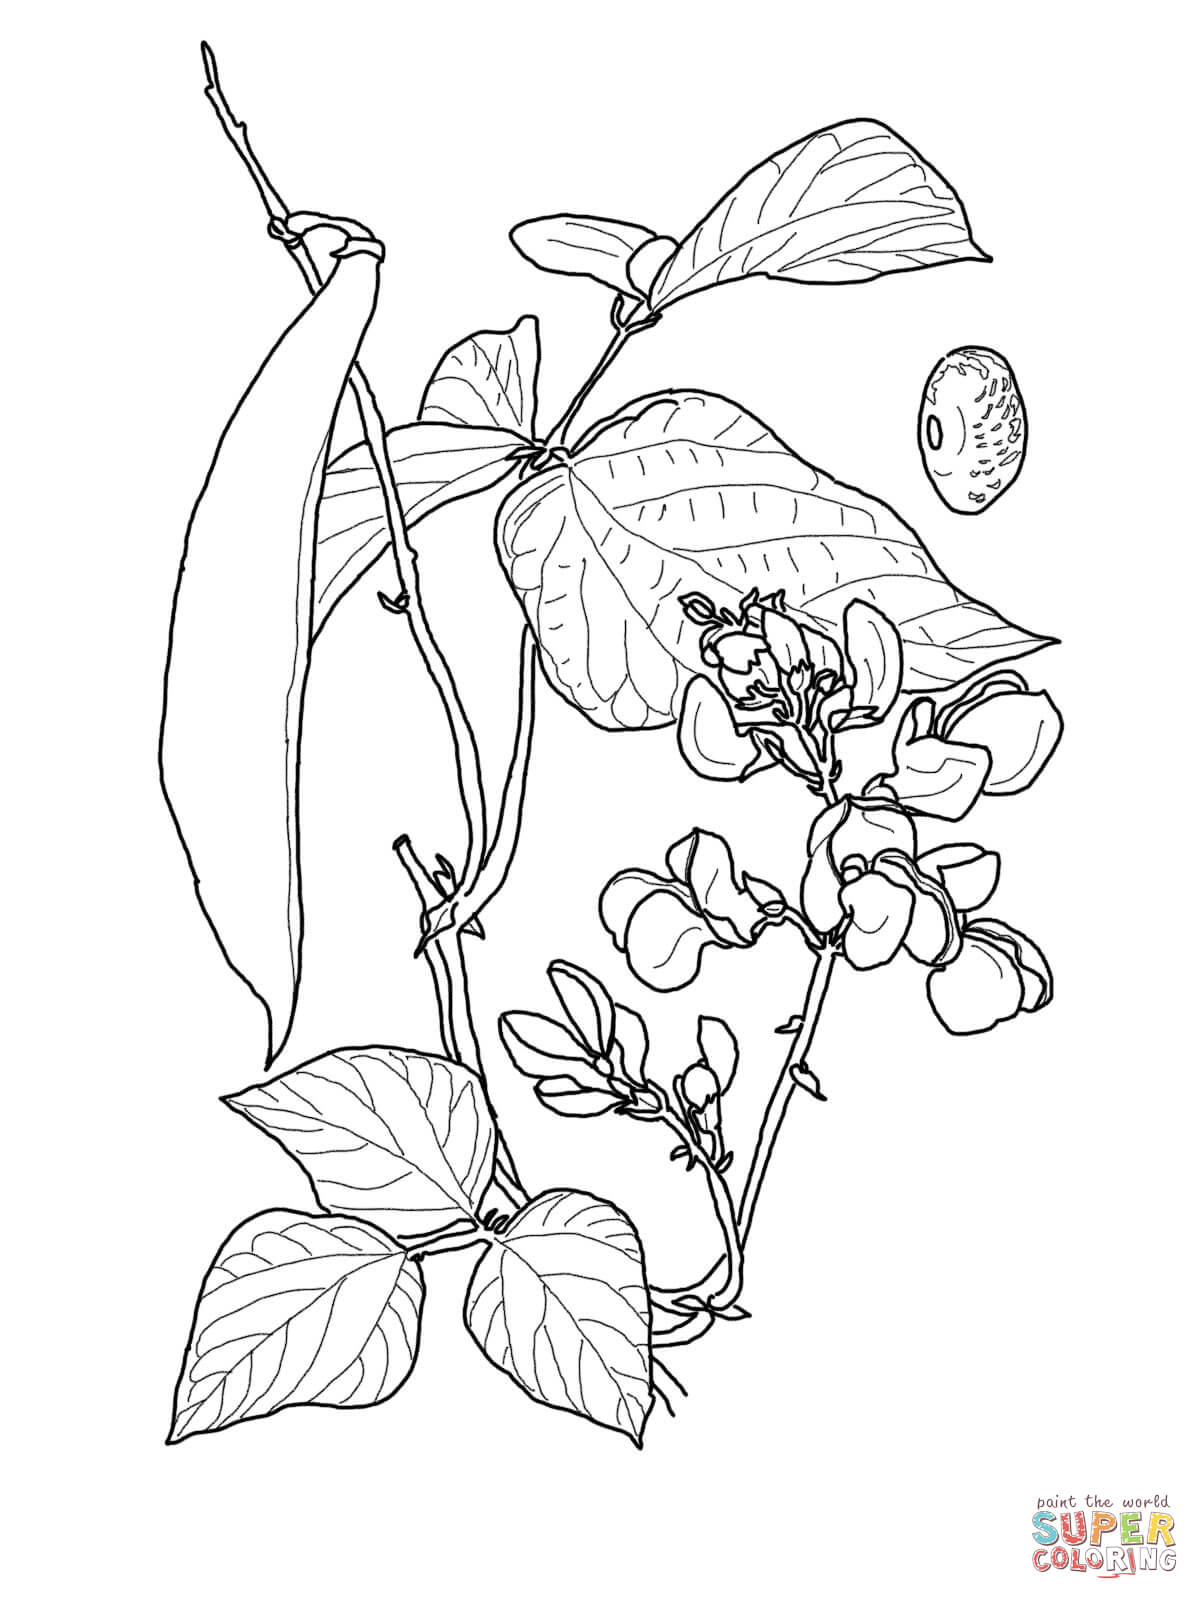 bean sprout coloring page free printable coloring pages